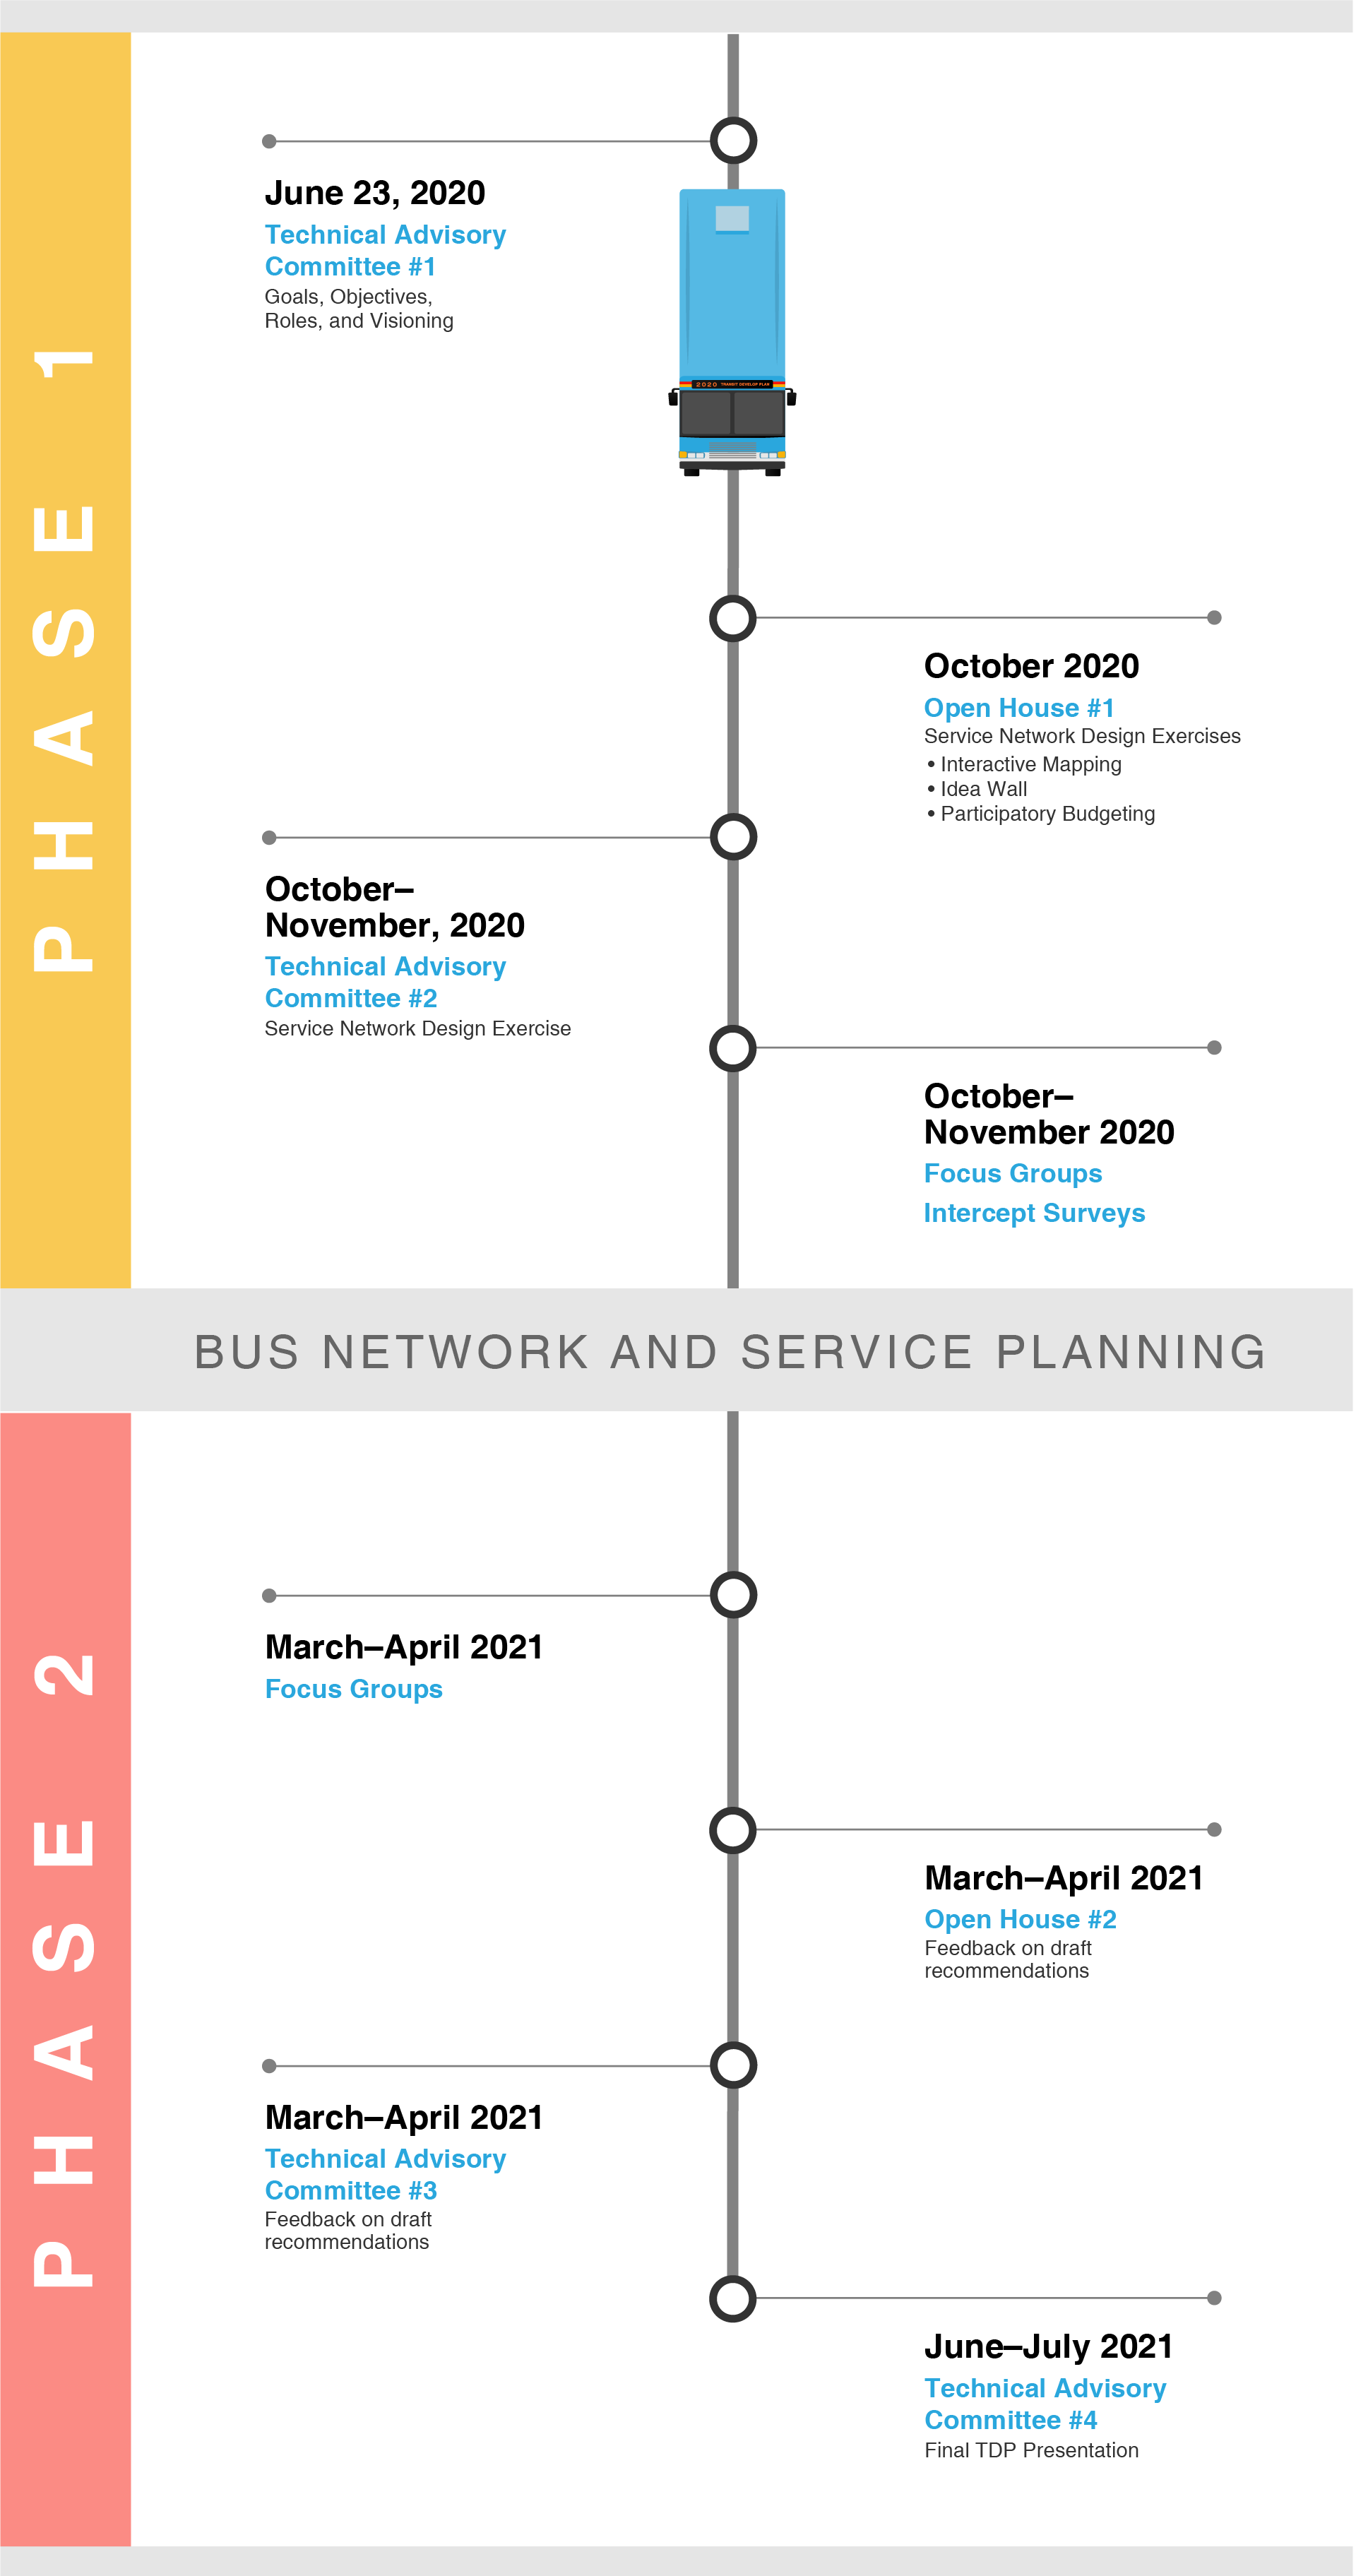 2020 Transit Development Plan timeline infographic